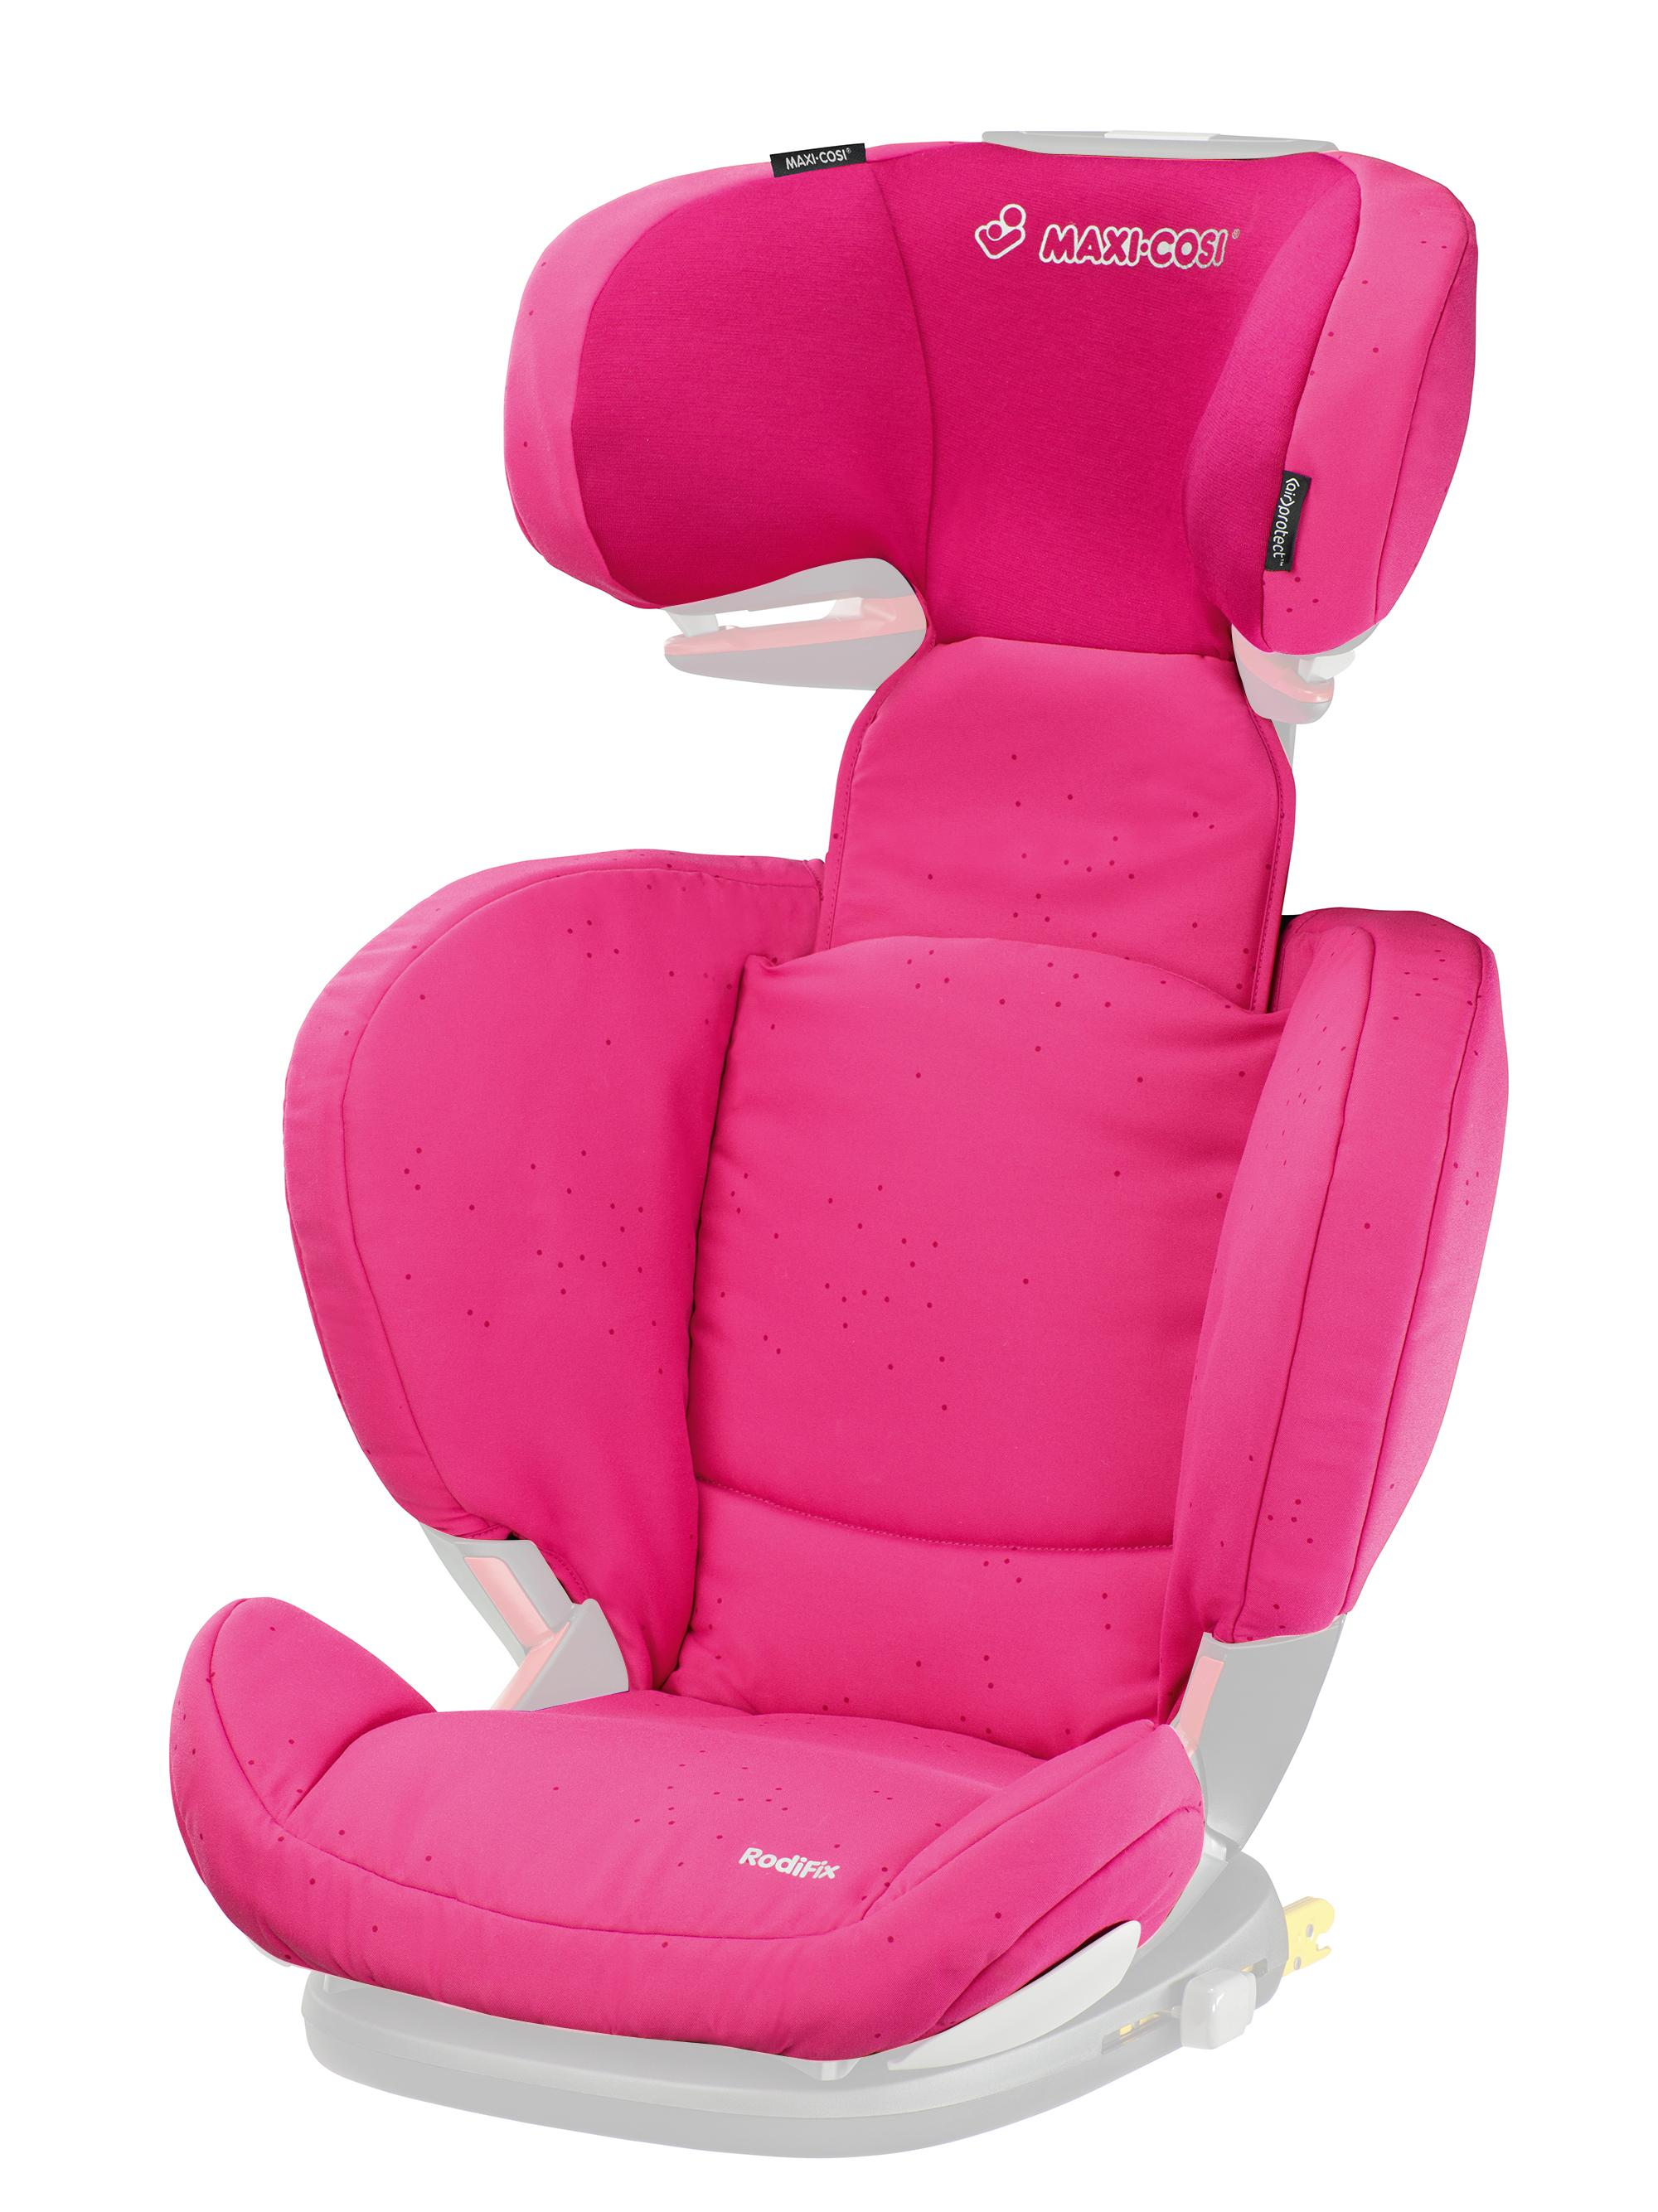 maxi cosi rodifix seat cover berry pink 2015 range baby. Black Bedroom Furniture Sets. Home Design Ideas